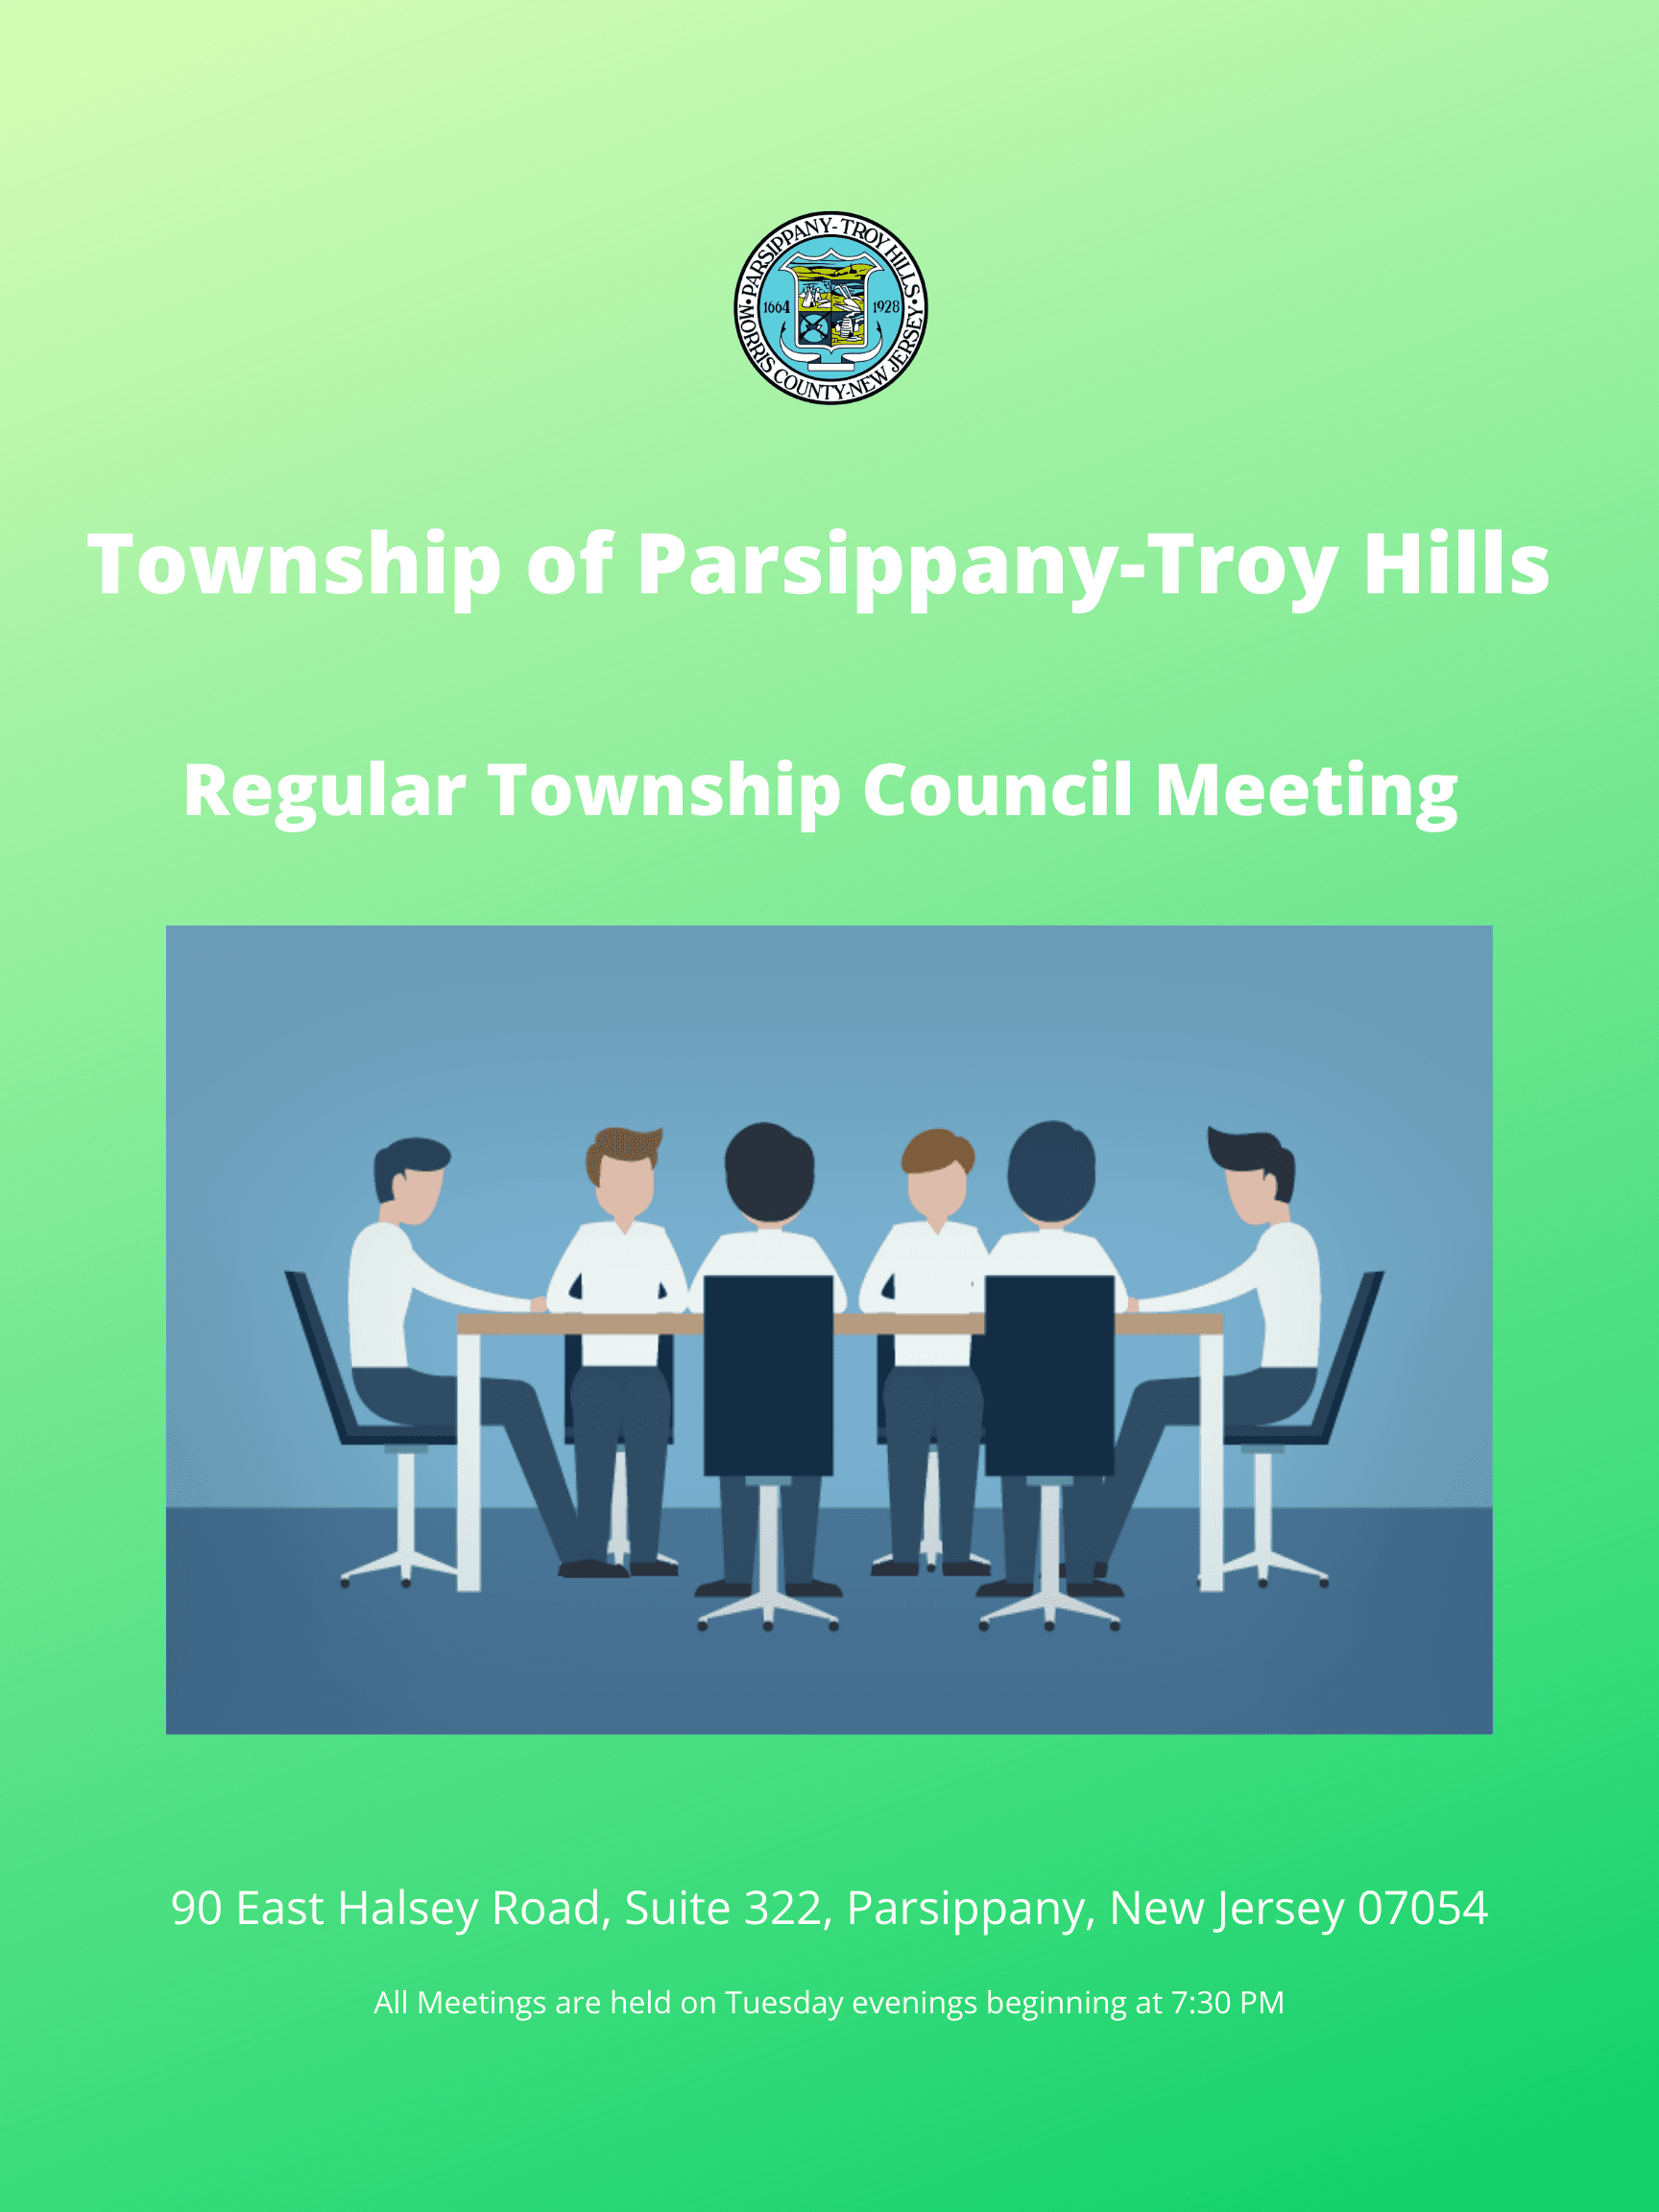 Township of Parsippany-Troy Hills EDA